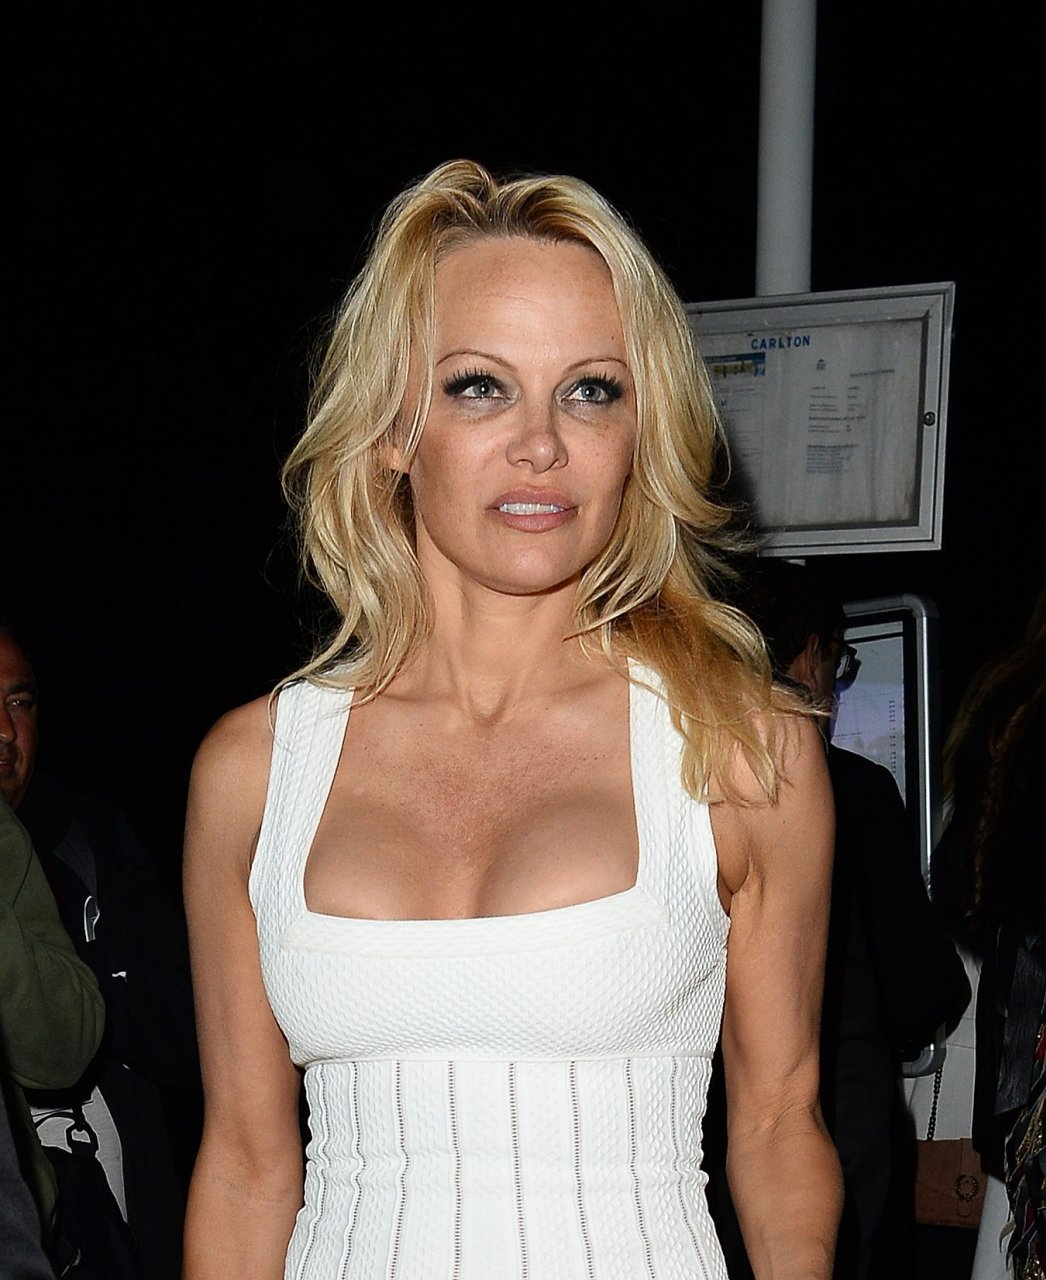 Pamela Anderson Nude Photos and Videos | #TheFappening